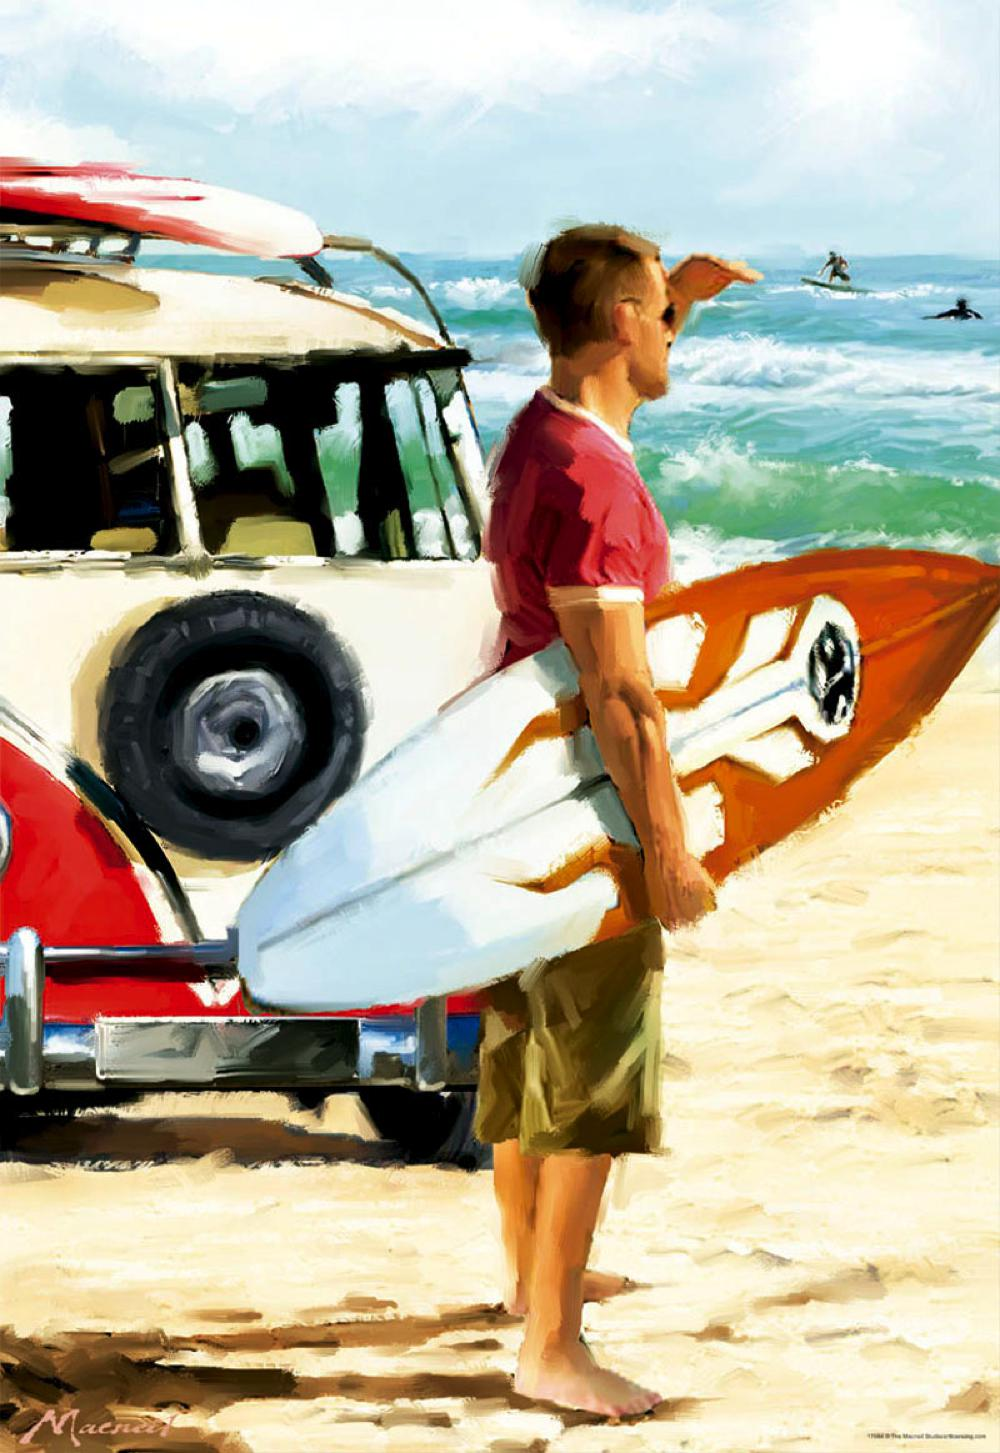 Puzzle 500 Pieces - Surfer